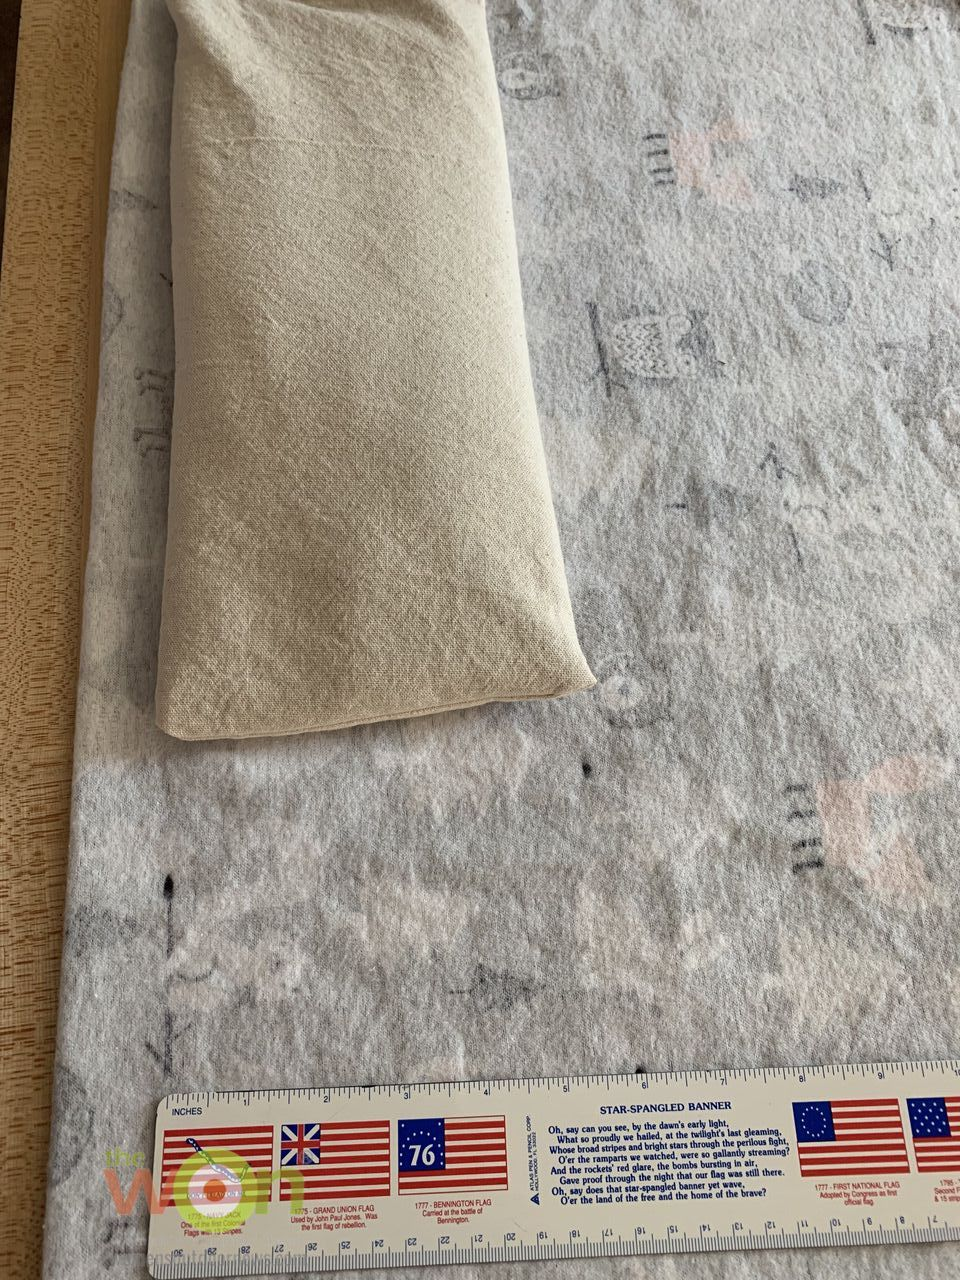 extra fabric for back of bag